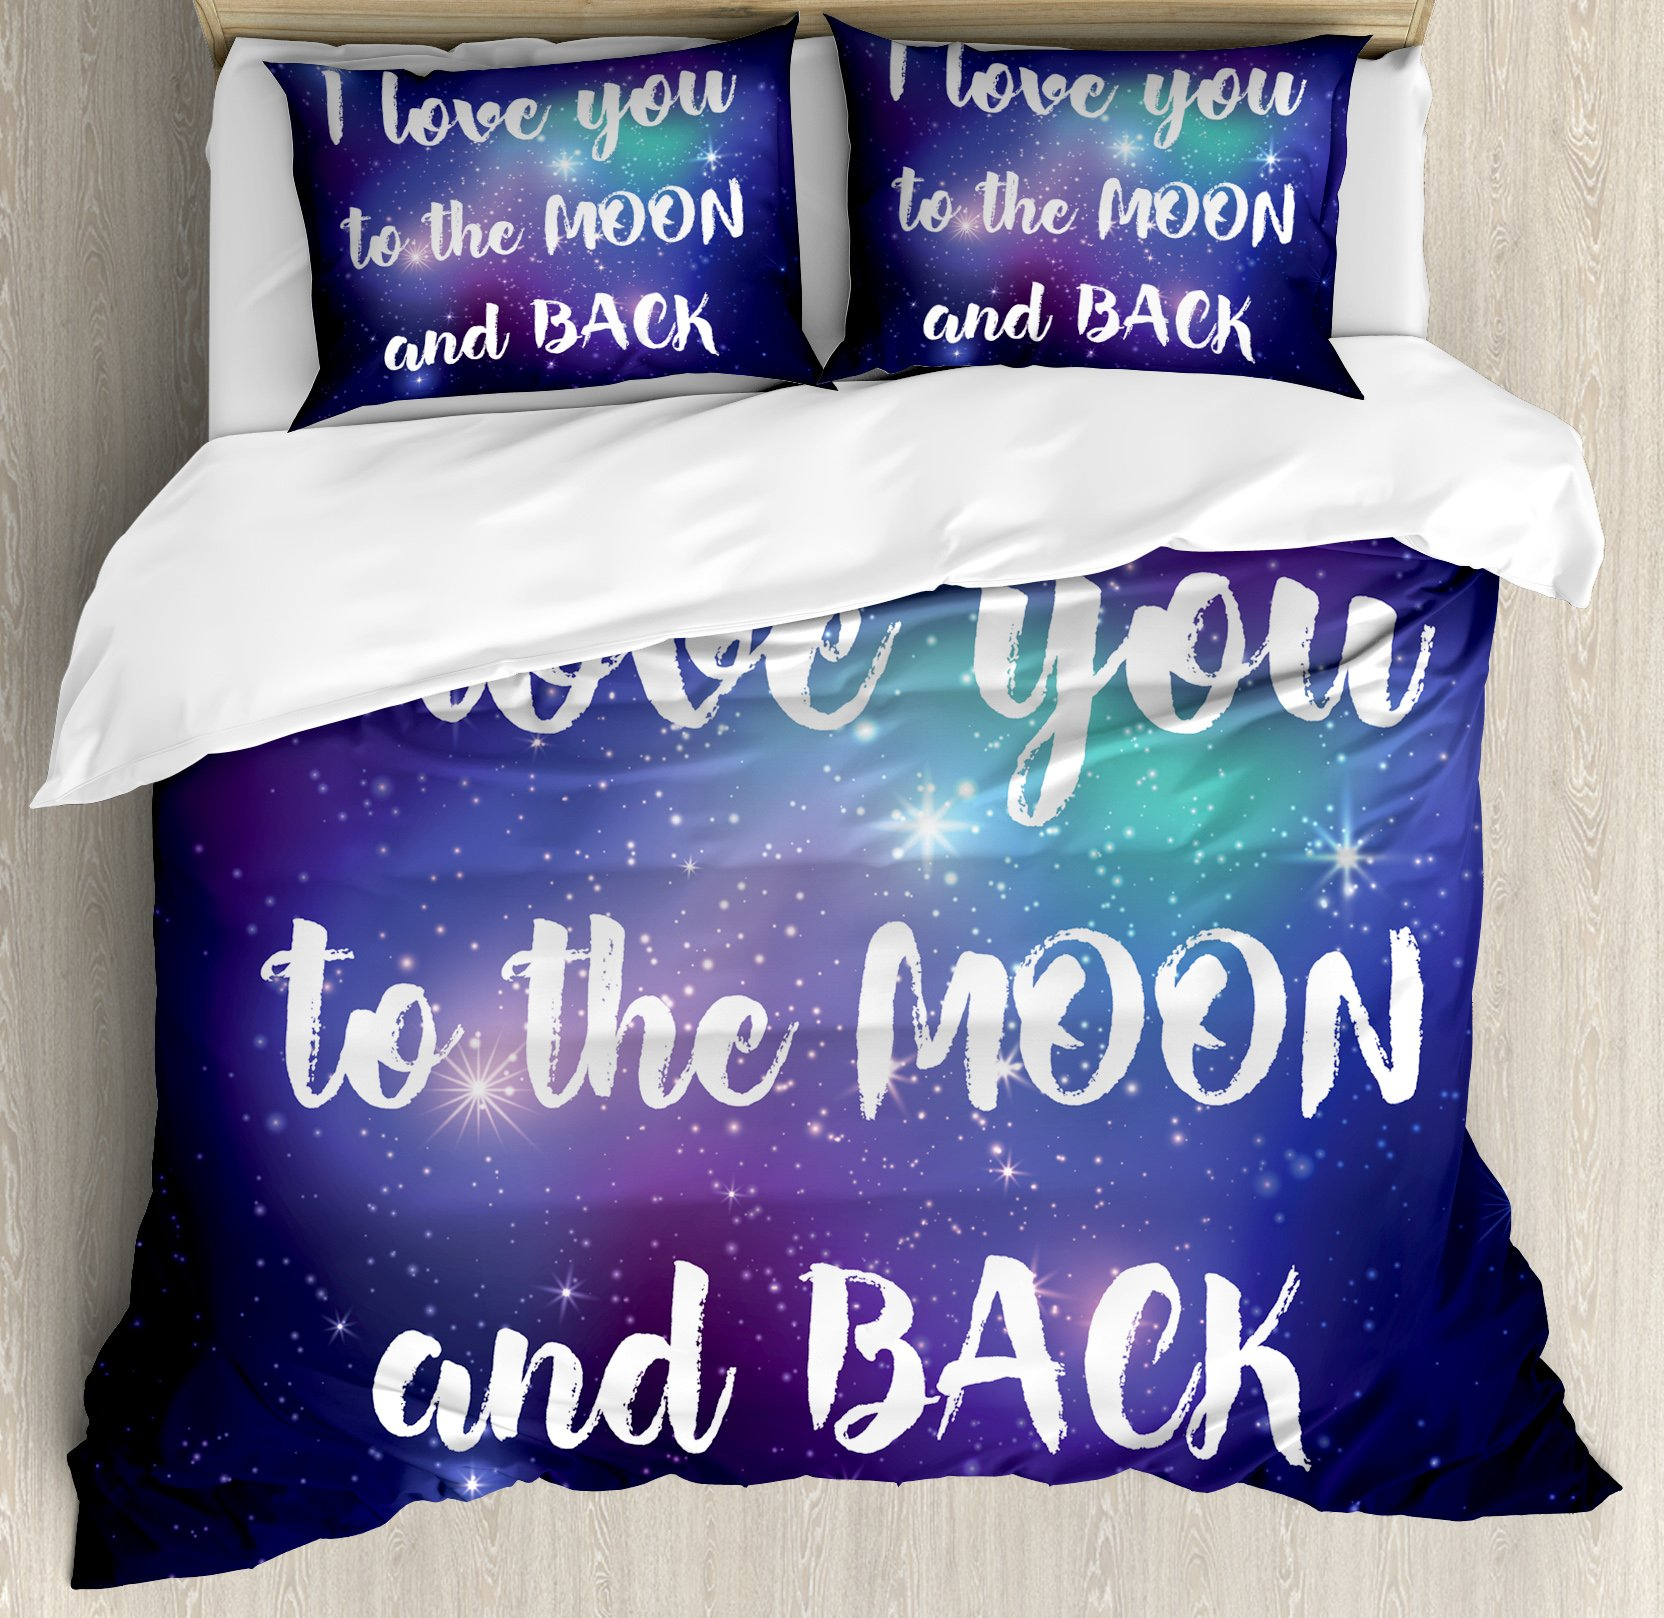 I Love You Duvet Cover Set Queen Size by Ambesonne, Outer Space with Valentine's I Love You to the Moon and Back Typography, Decorative 3 Piece Bedding Set with 2 Pillow Shams, Dark Purple White,